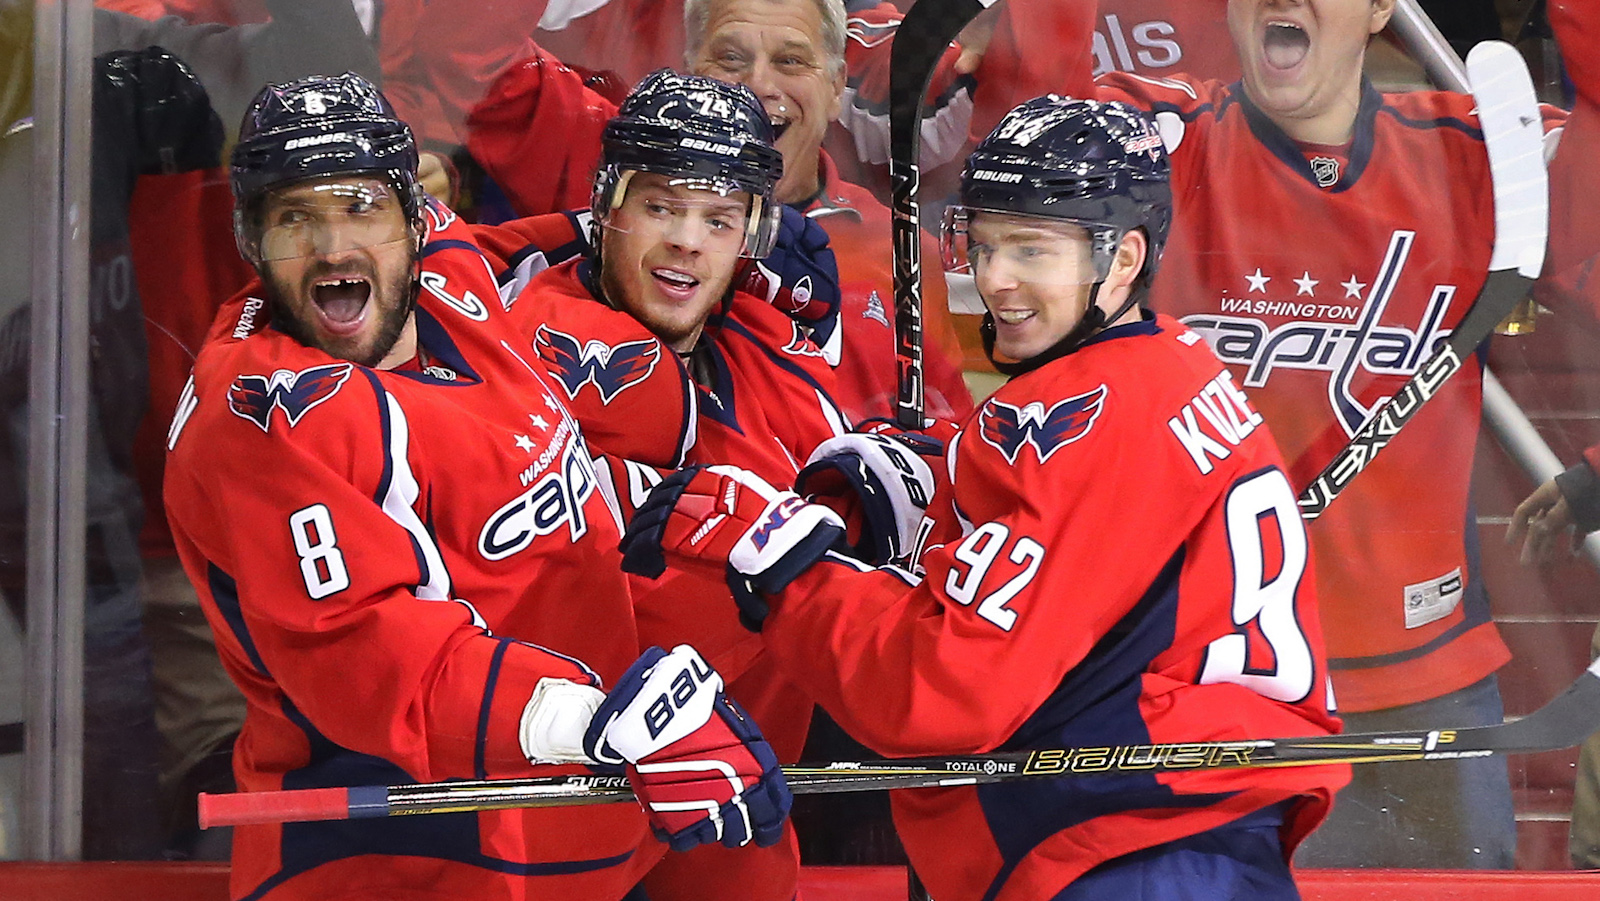 Nov 23, 2016; Washington, DC, USA; Washington Capitals left wing Alex Ovechkin (8) celebrates with Capitals center Evgeny Kuznetsov (92) and Capitals defenseman John Carlson (74) after scoring a hat trick goal against the St. Louis Blues in the third period at Verizon Center. The Capitals won 4-3. Mandatory Credit: Geoff Burke-USA TODAY Sports